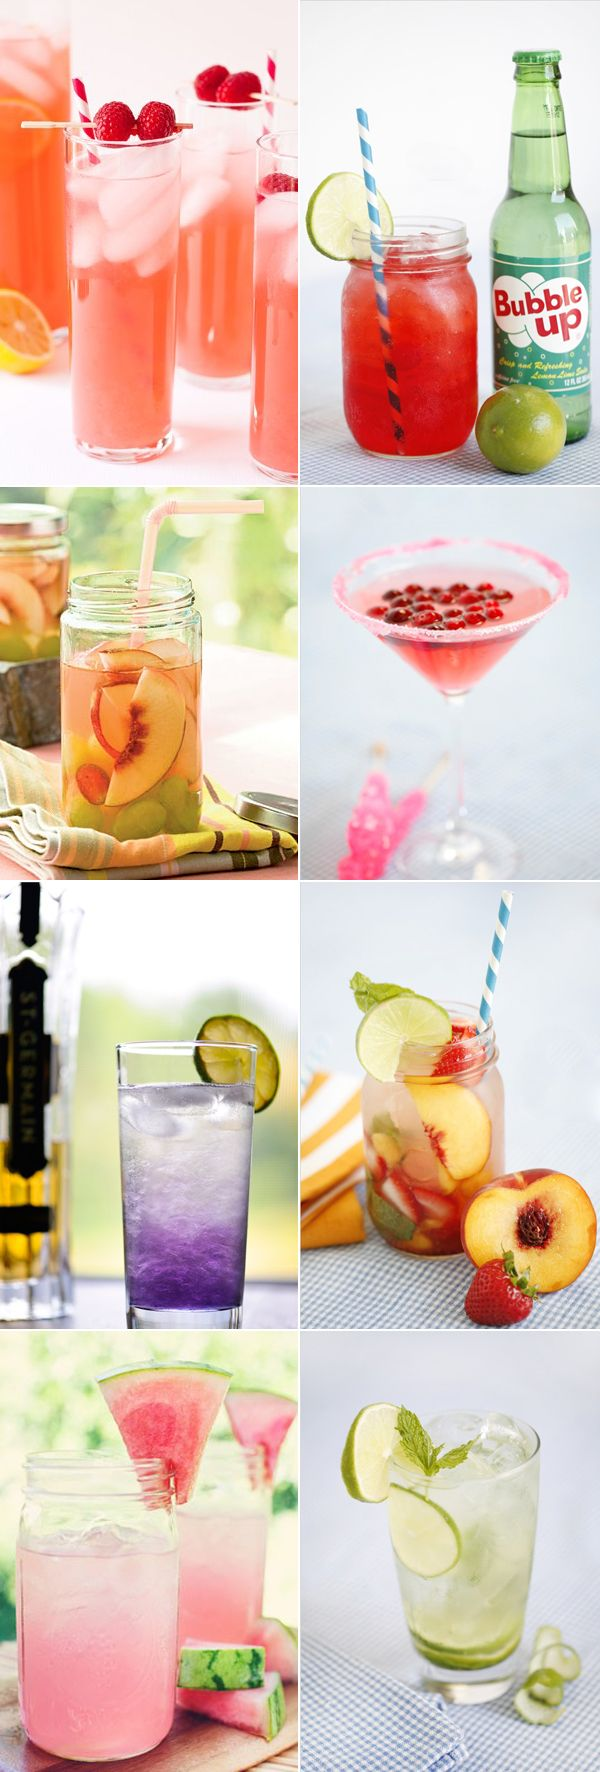 34 Creative Wedding Drinks - Fruity Drinks